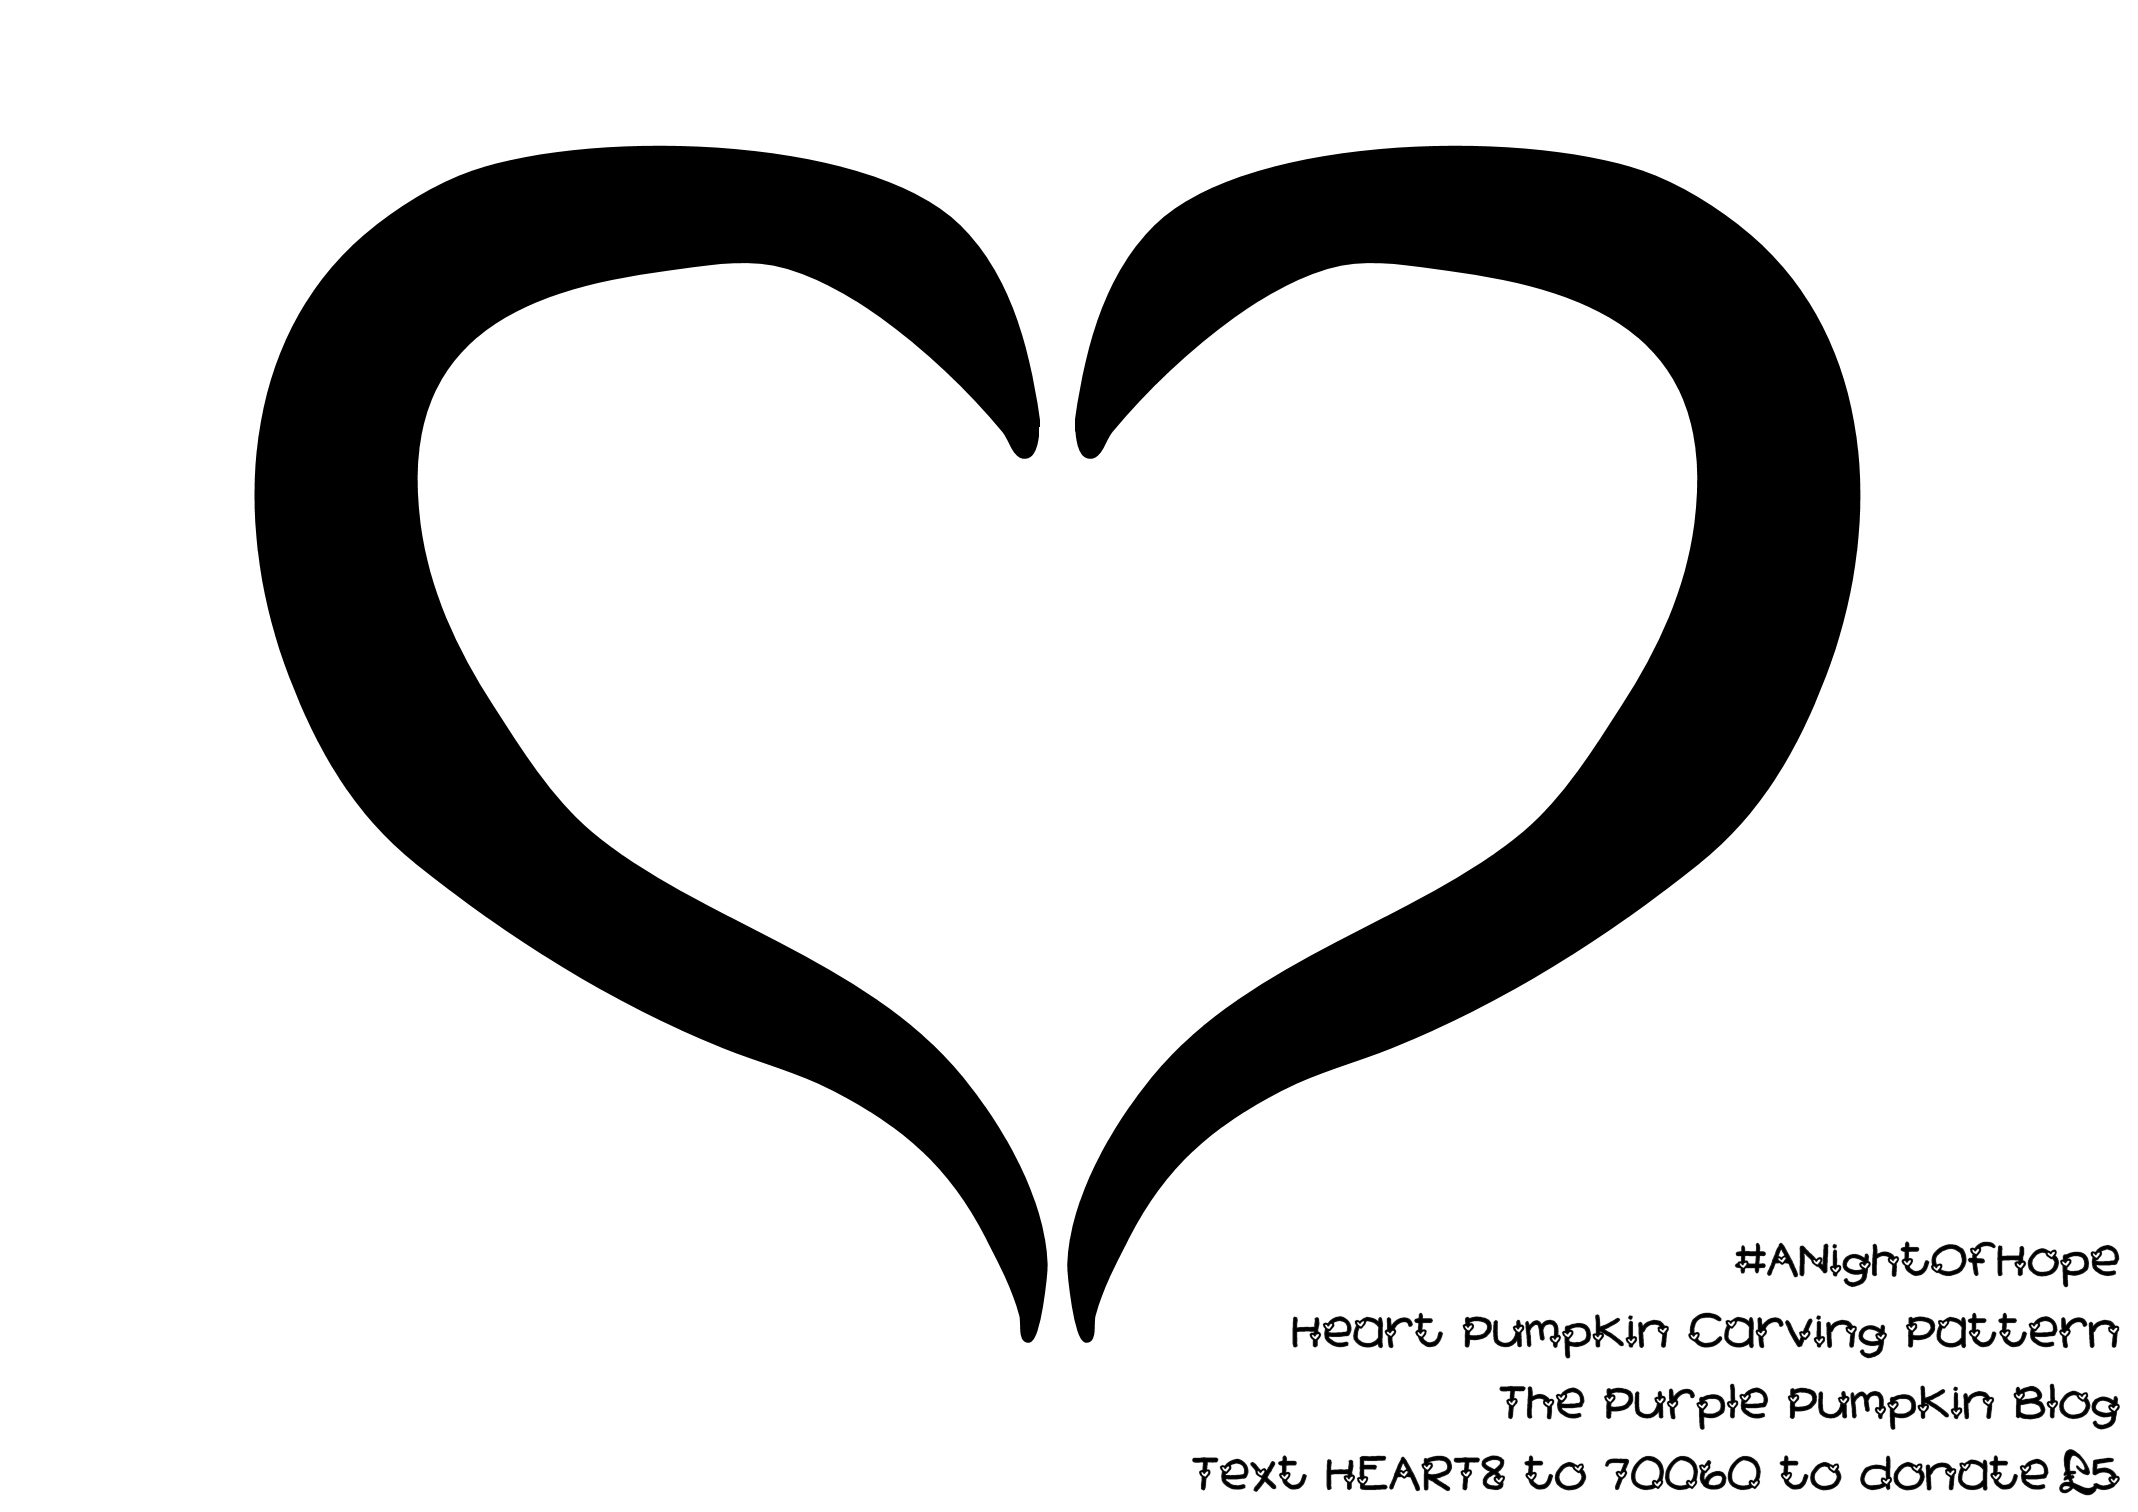 carve a pumpkin with a heart for anightofhope the purple